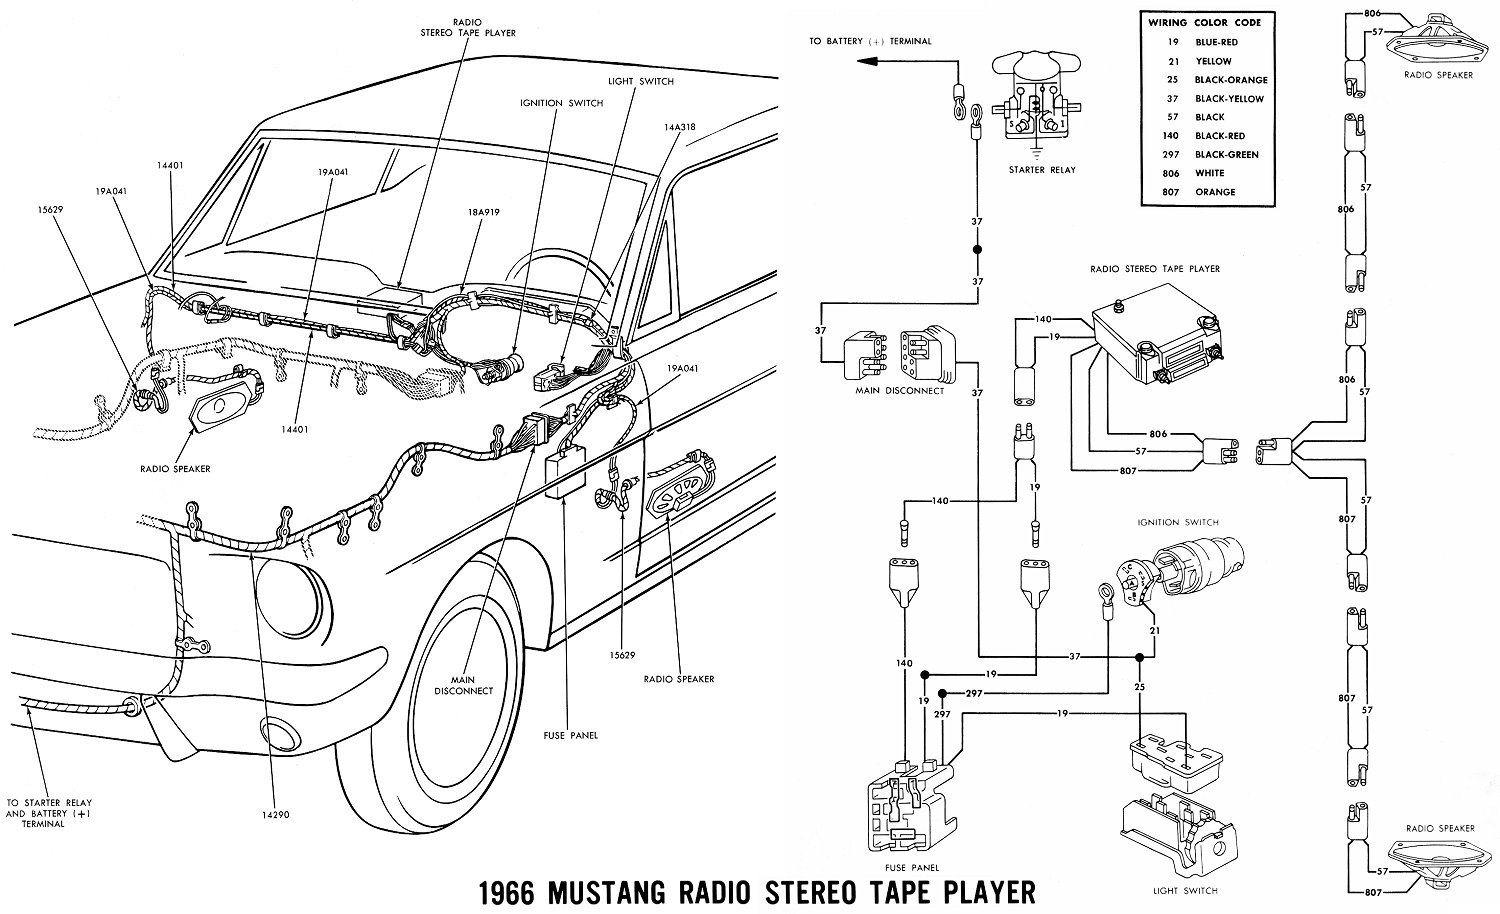 1966 mustang flasher diagram wiring schematic 1966 mustang wiring diagrams - average joe restoration 1966 ford alternator diagram wiring schematic